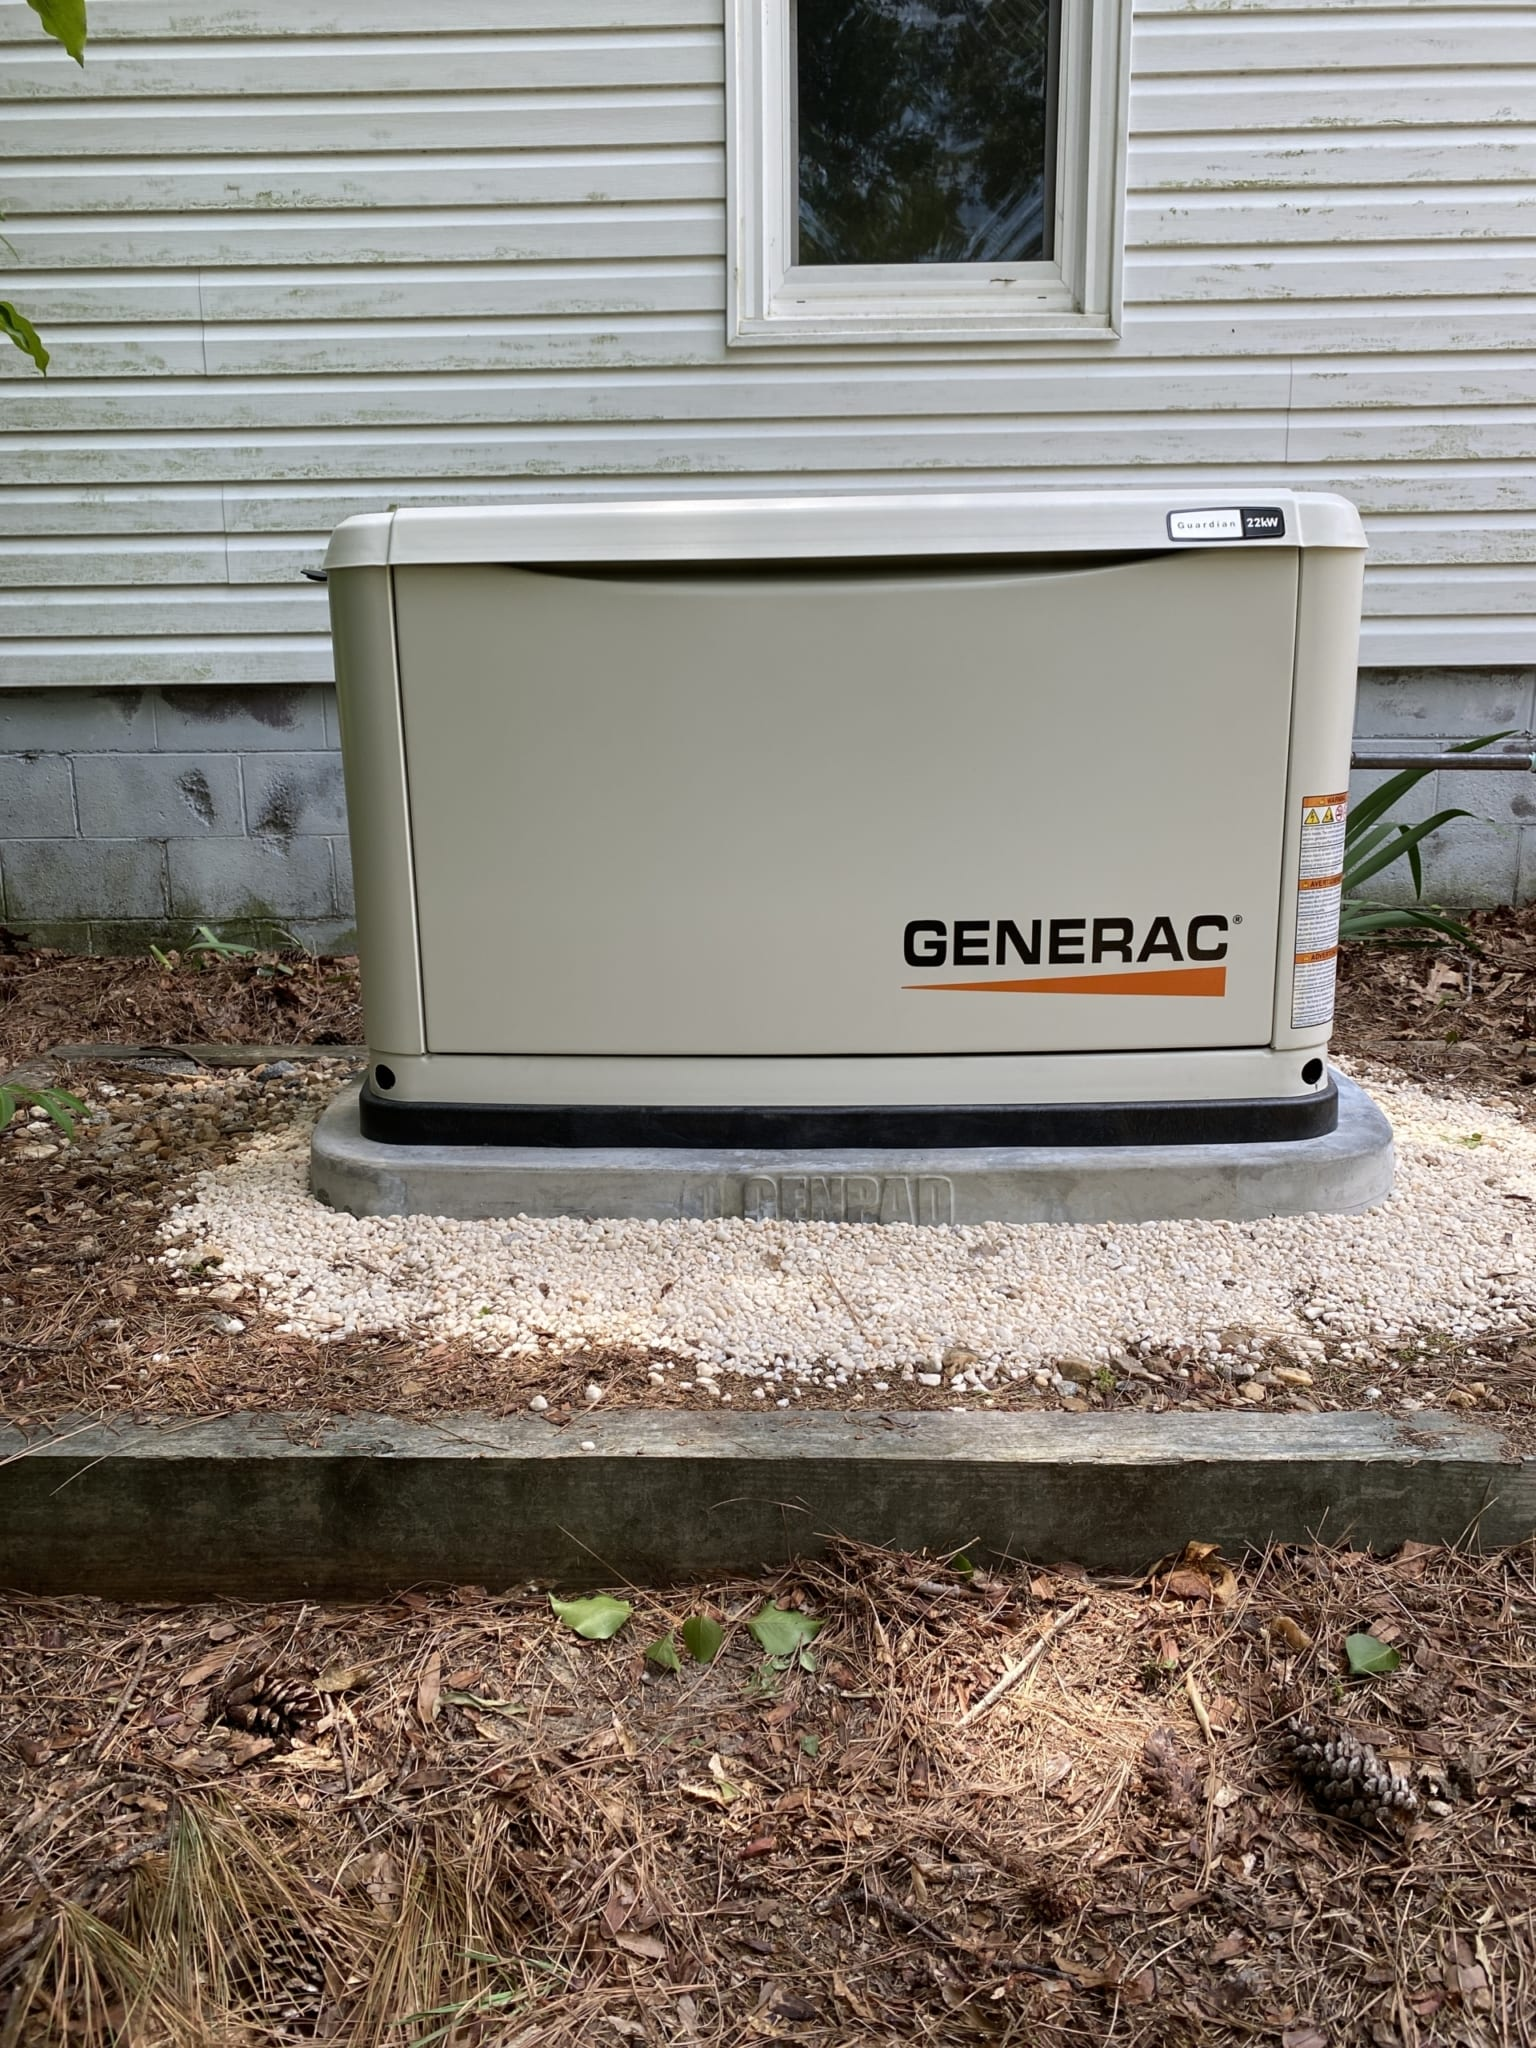 6.3.20 Dinwiddie Generac Automatic Standby Generator Replacement